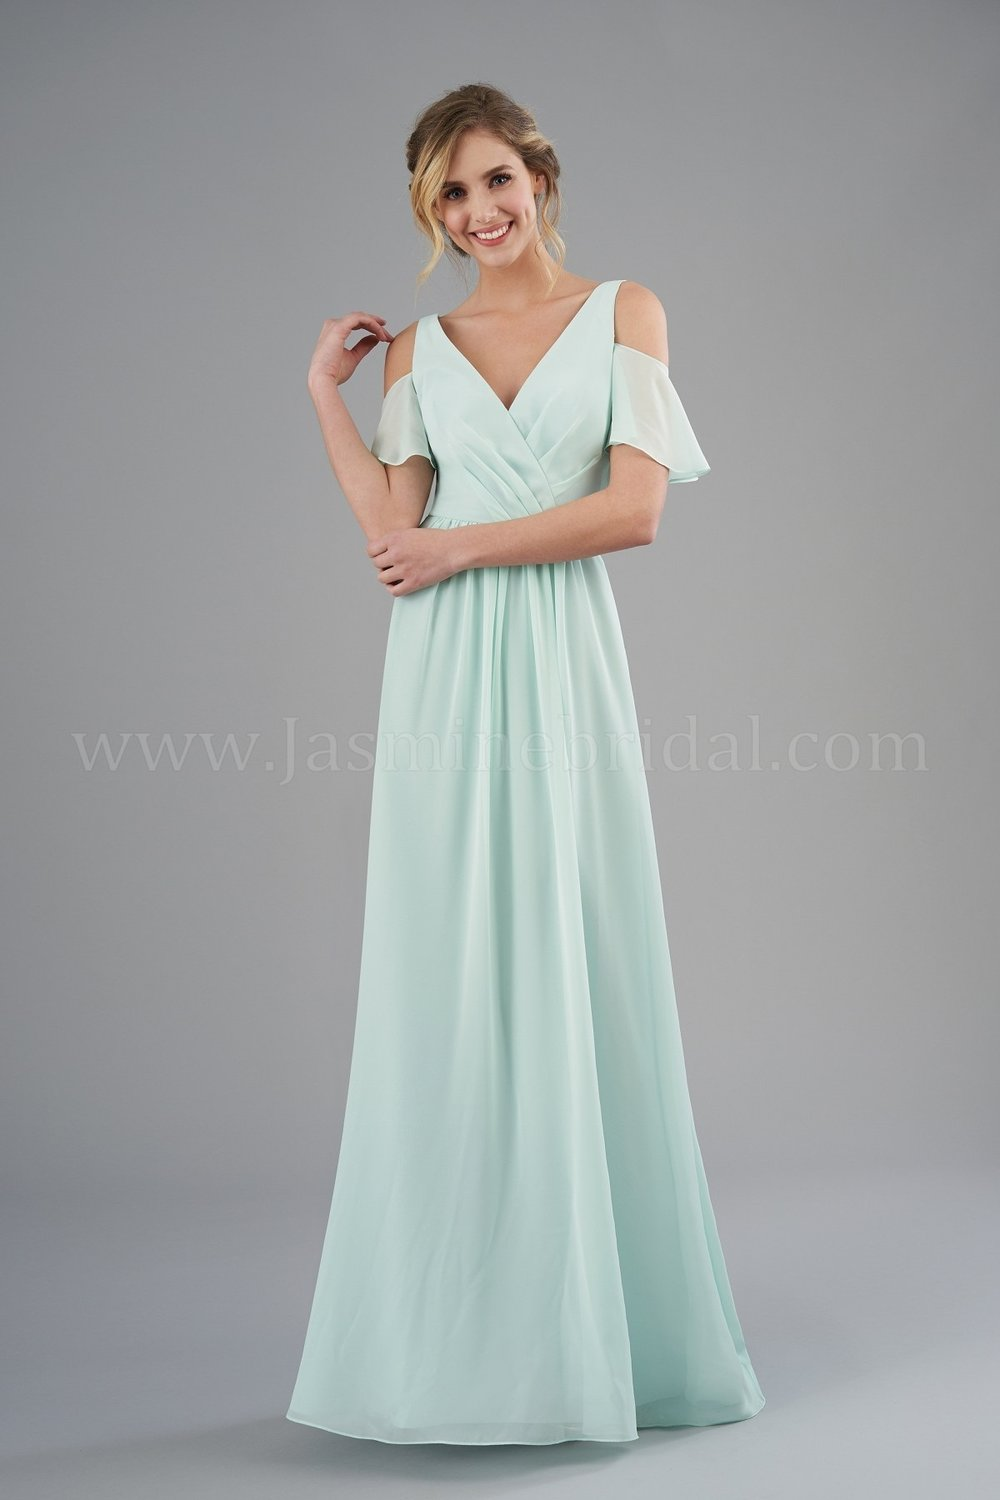 bridesmaid-dresses-B203052-F.jpg